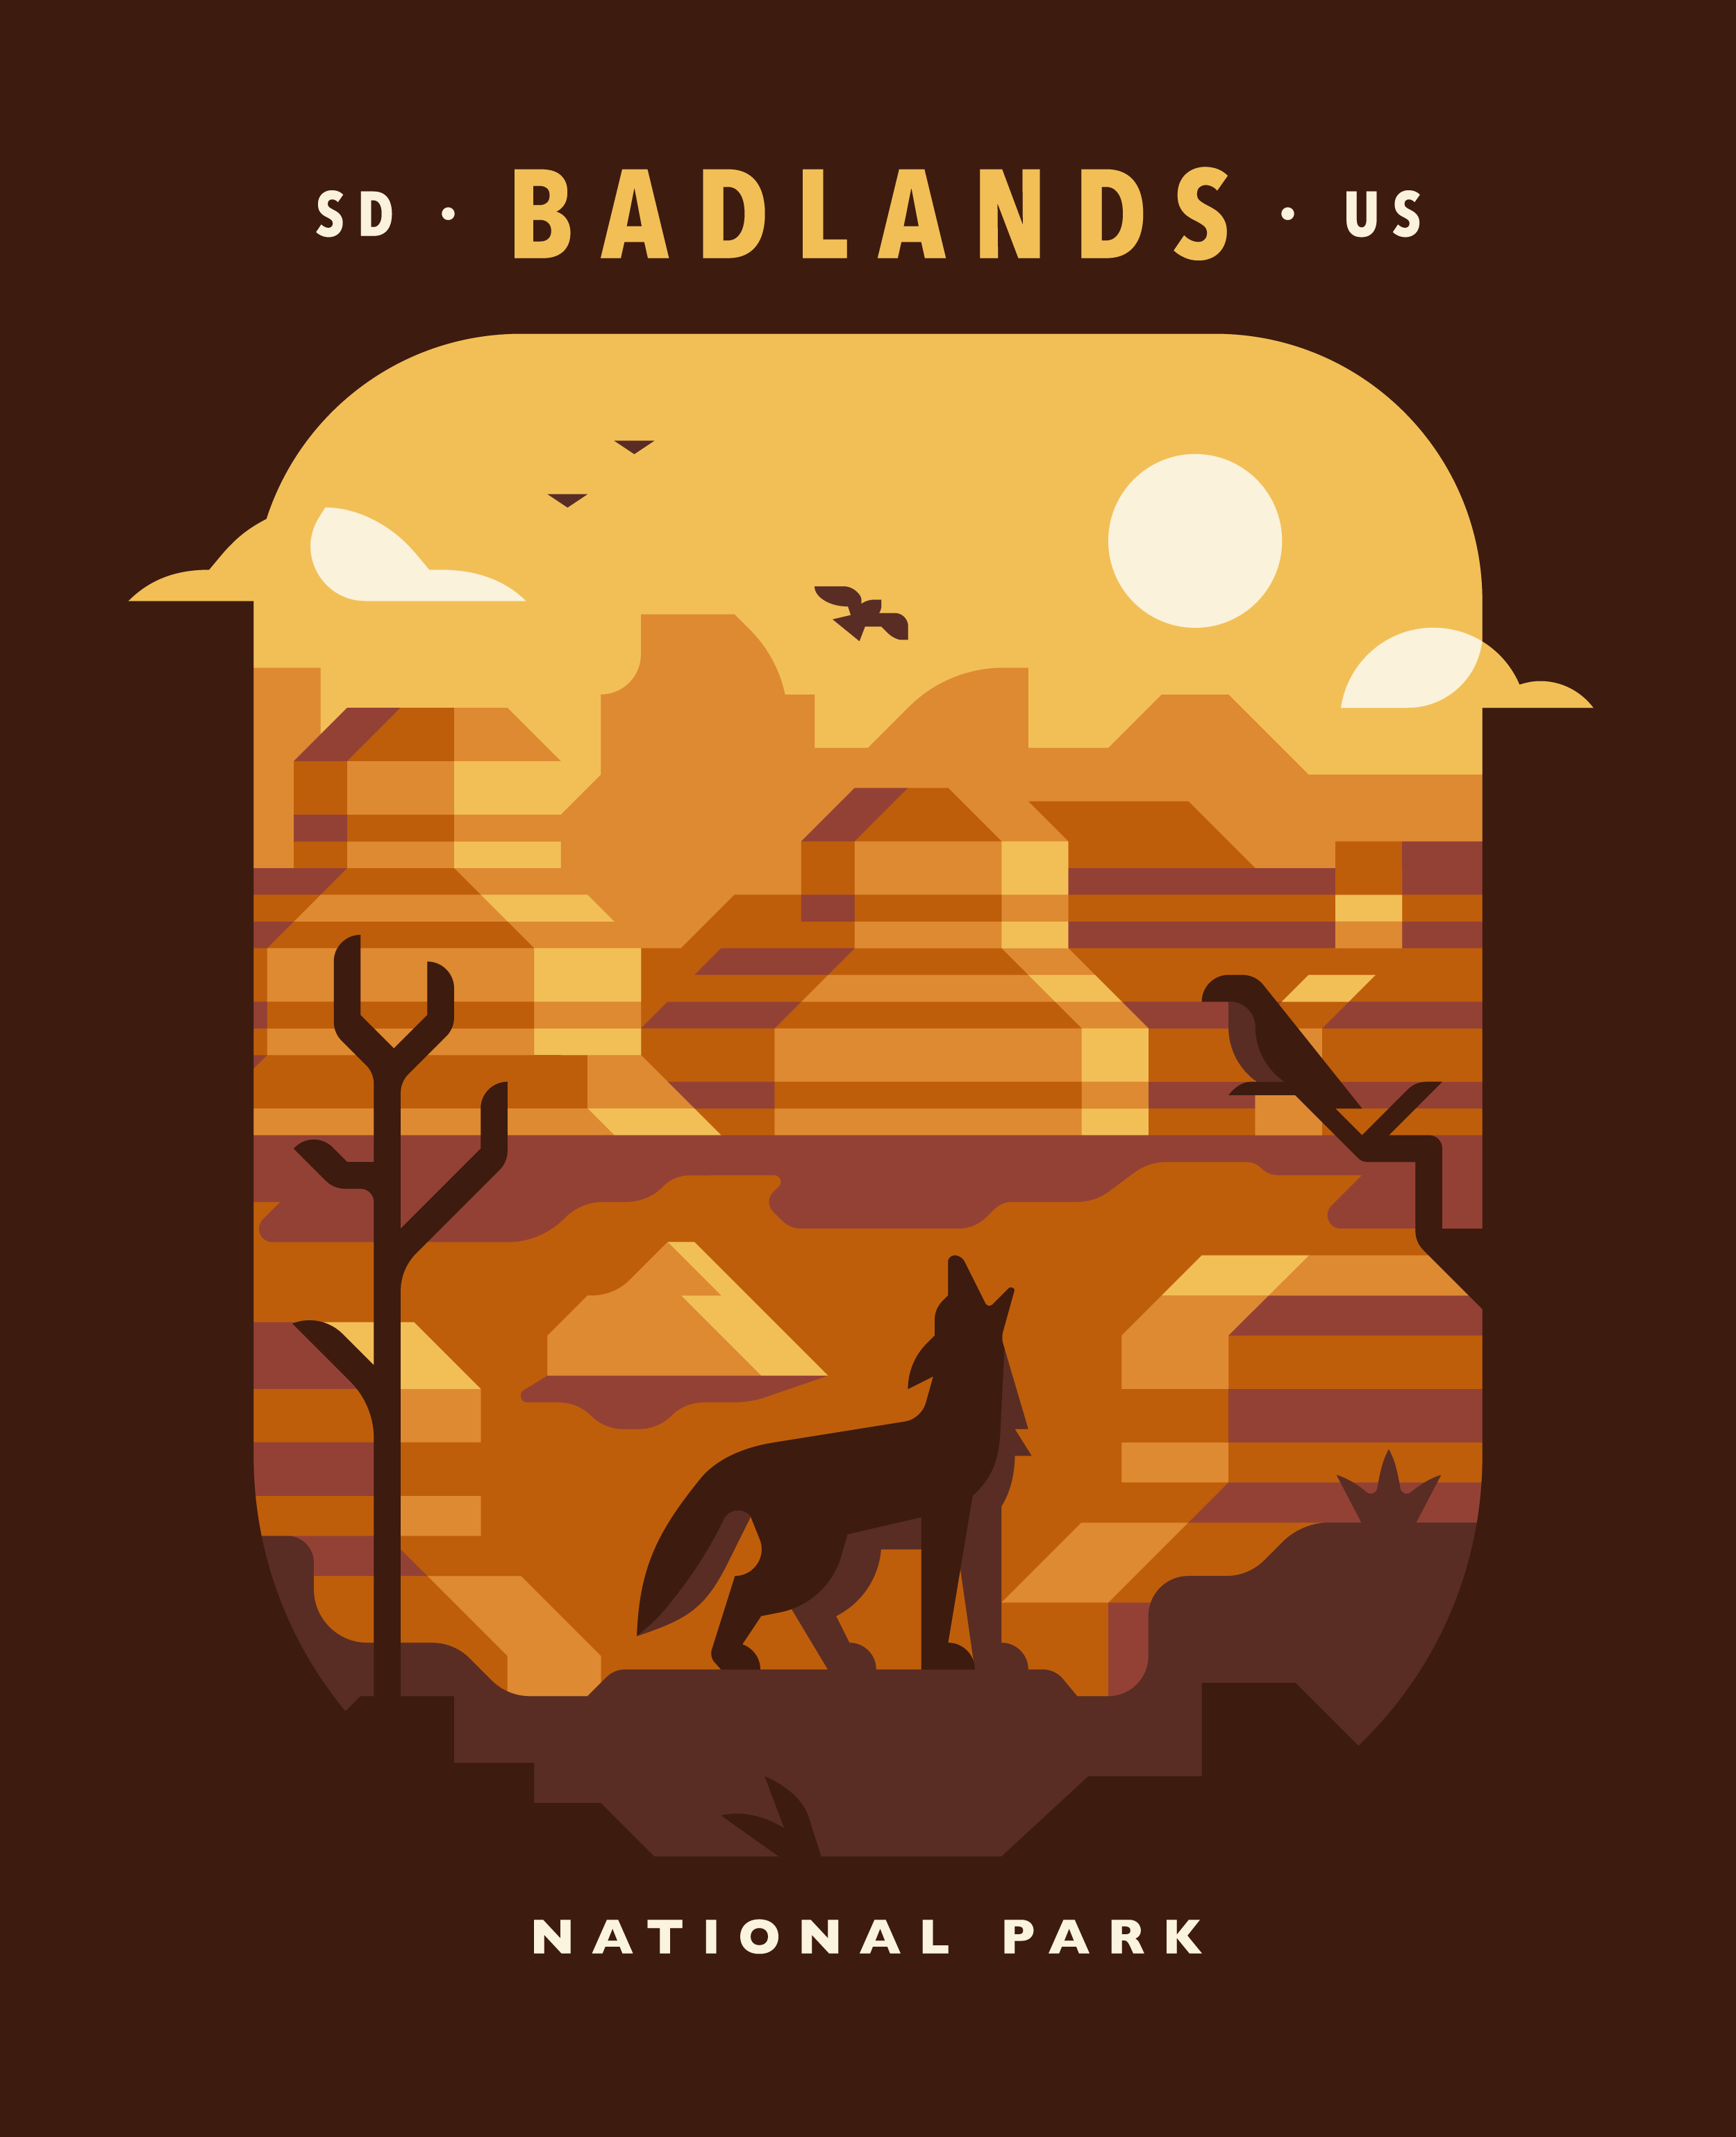 Badlands National Park poster design by Matt Anderson and Canopy Design. Limited color illustration of a desert canyon, bird, trees and a coyote.